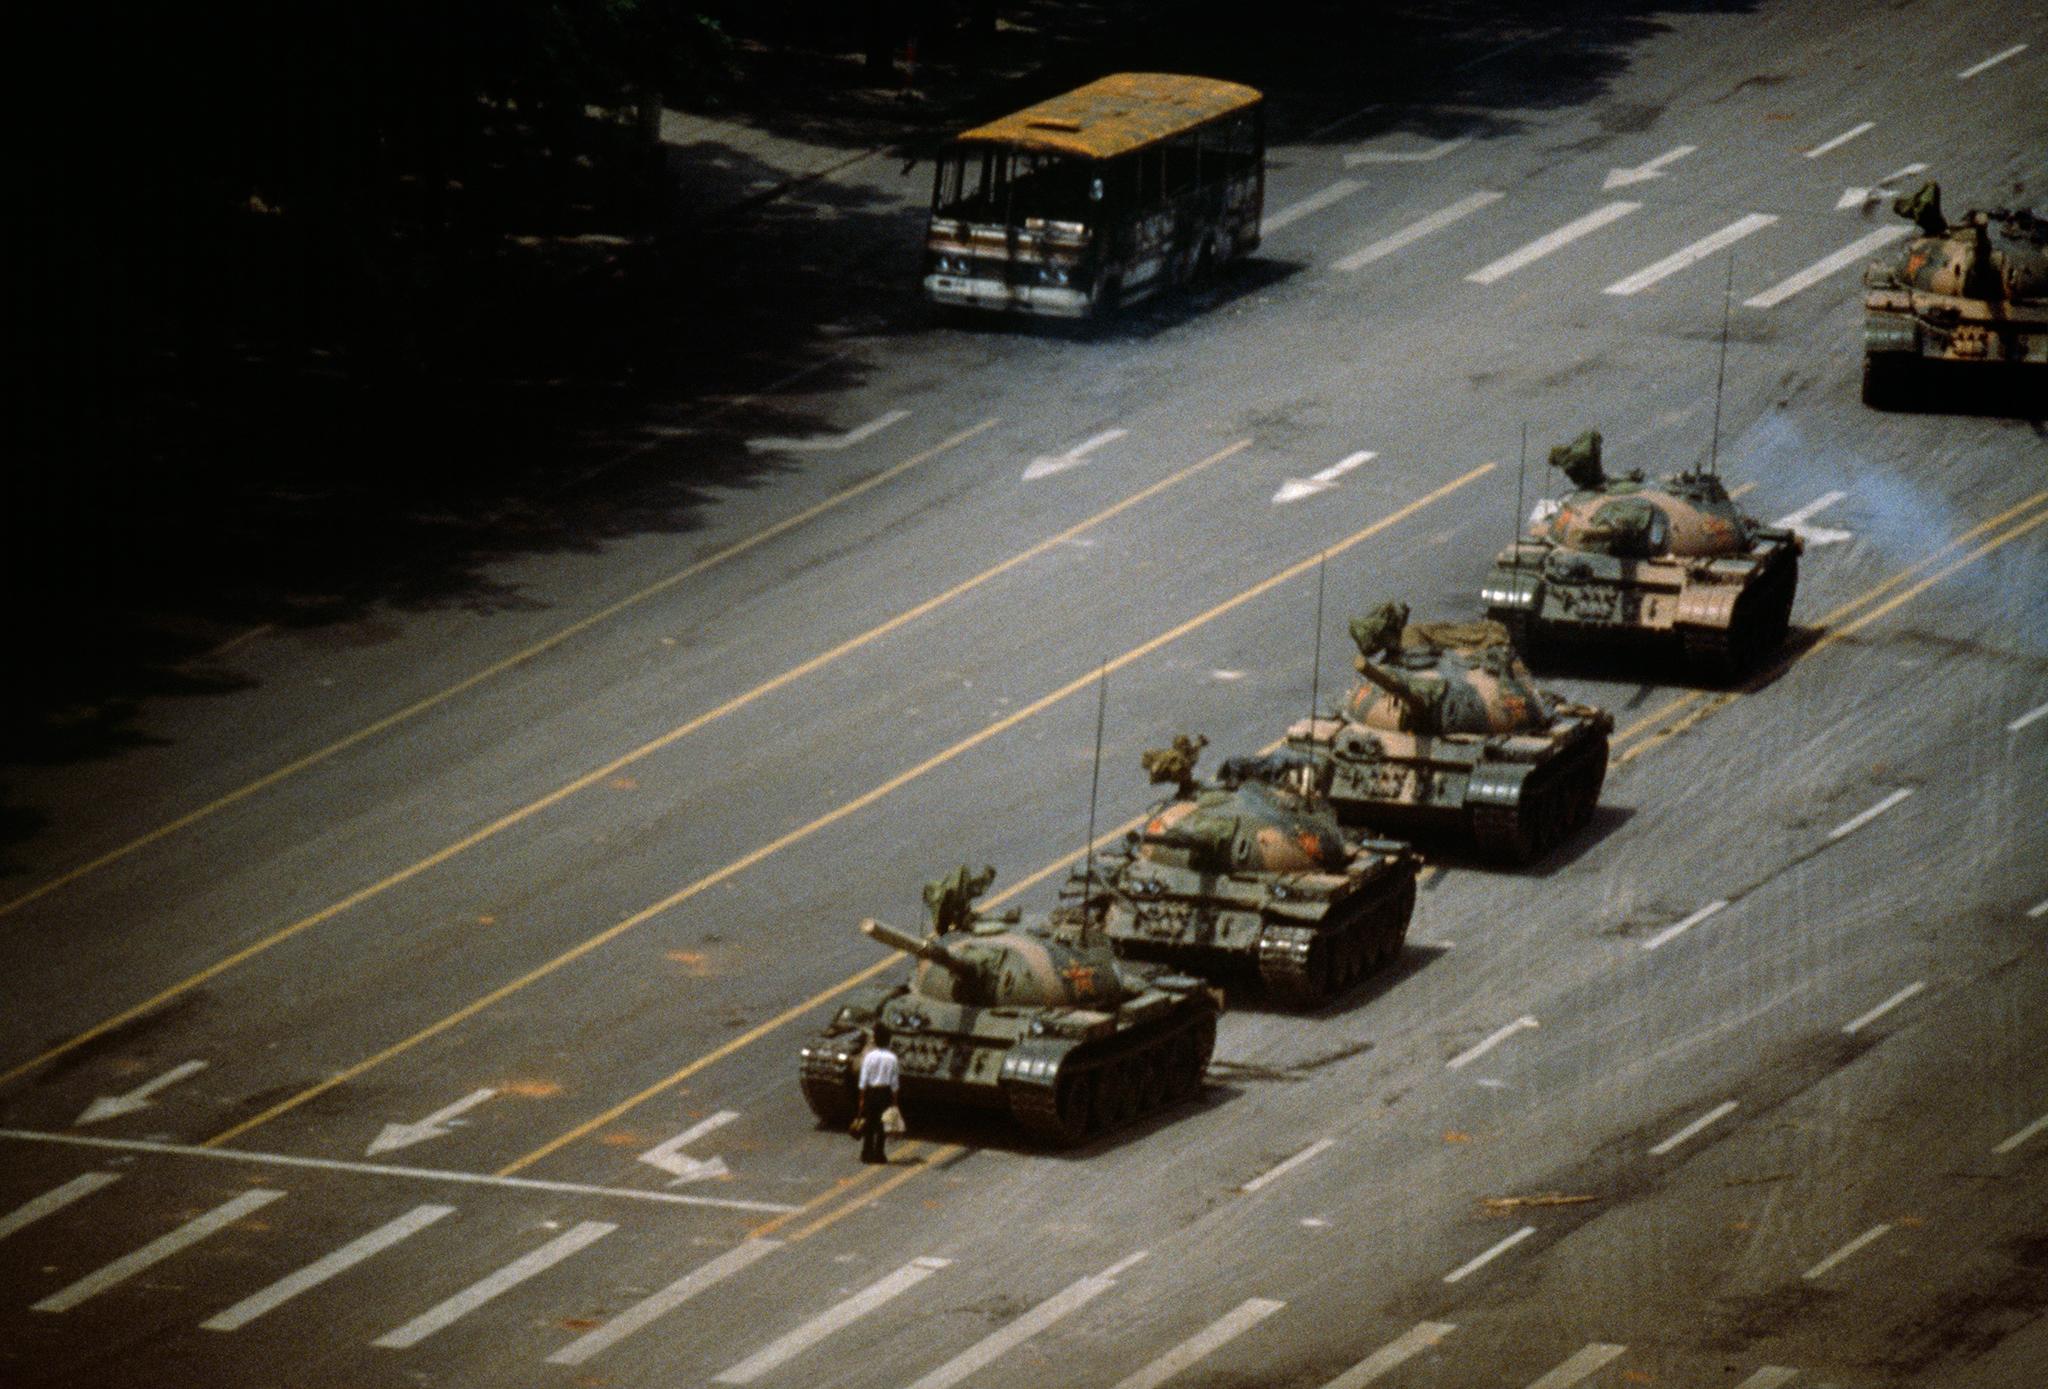 """""""Tank Man"""" 1989 Jeff Widener (Associated Press)  An unknown protester stands along in front of a parade of tanks in Tiananmen Square in Beijing, China, during the protests against the regime and subsequent violent government crackdown."""